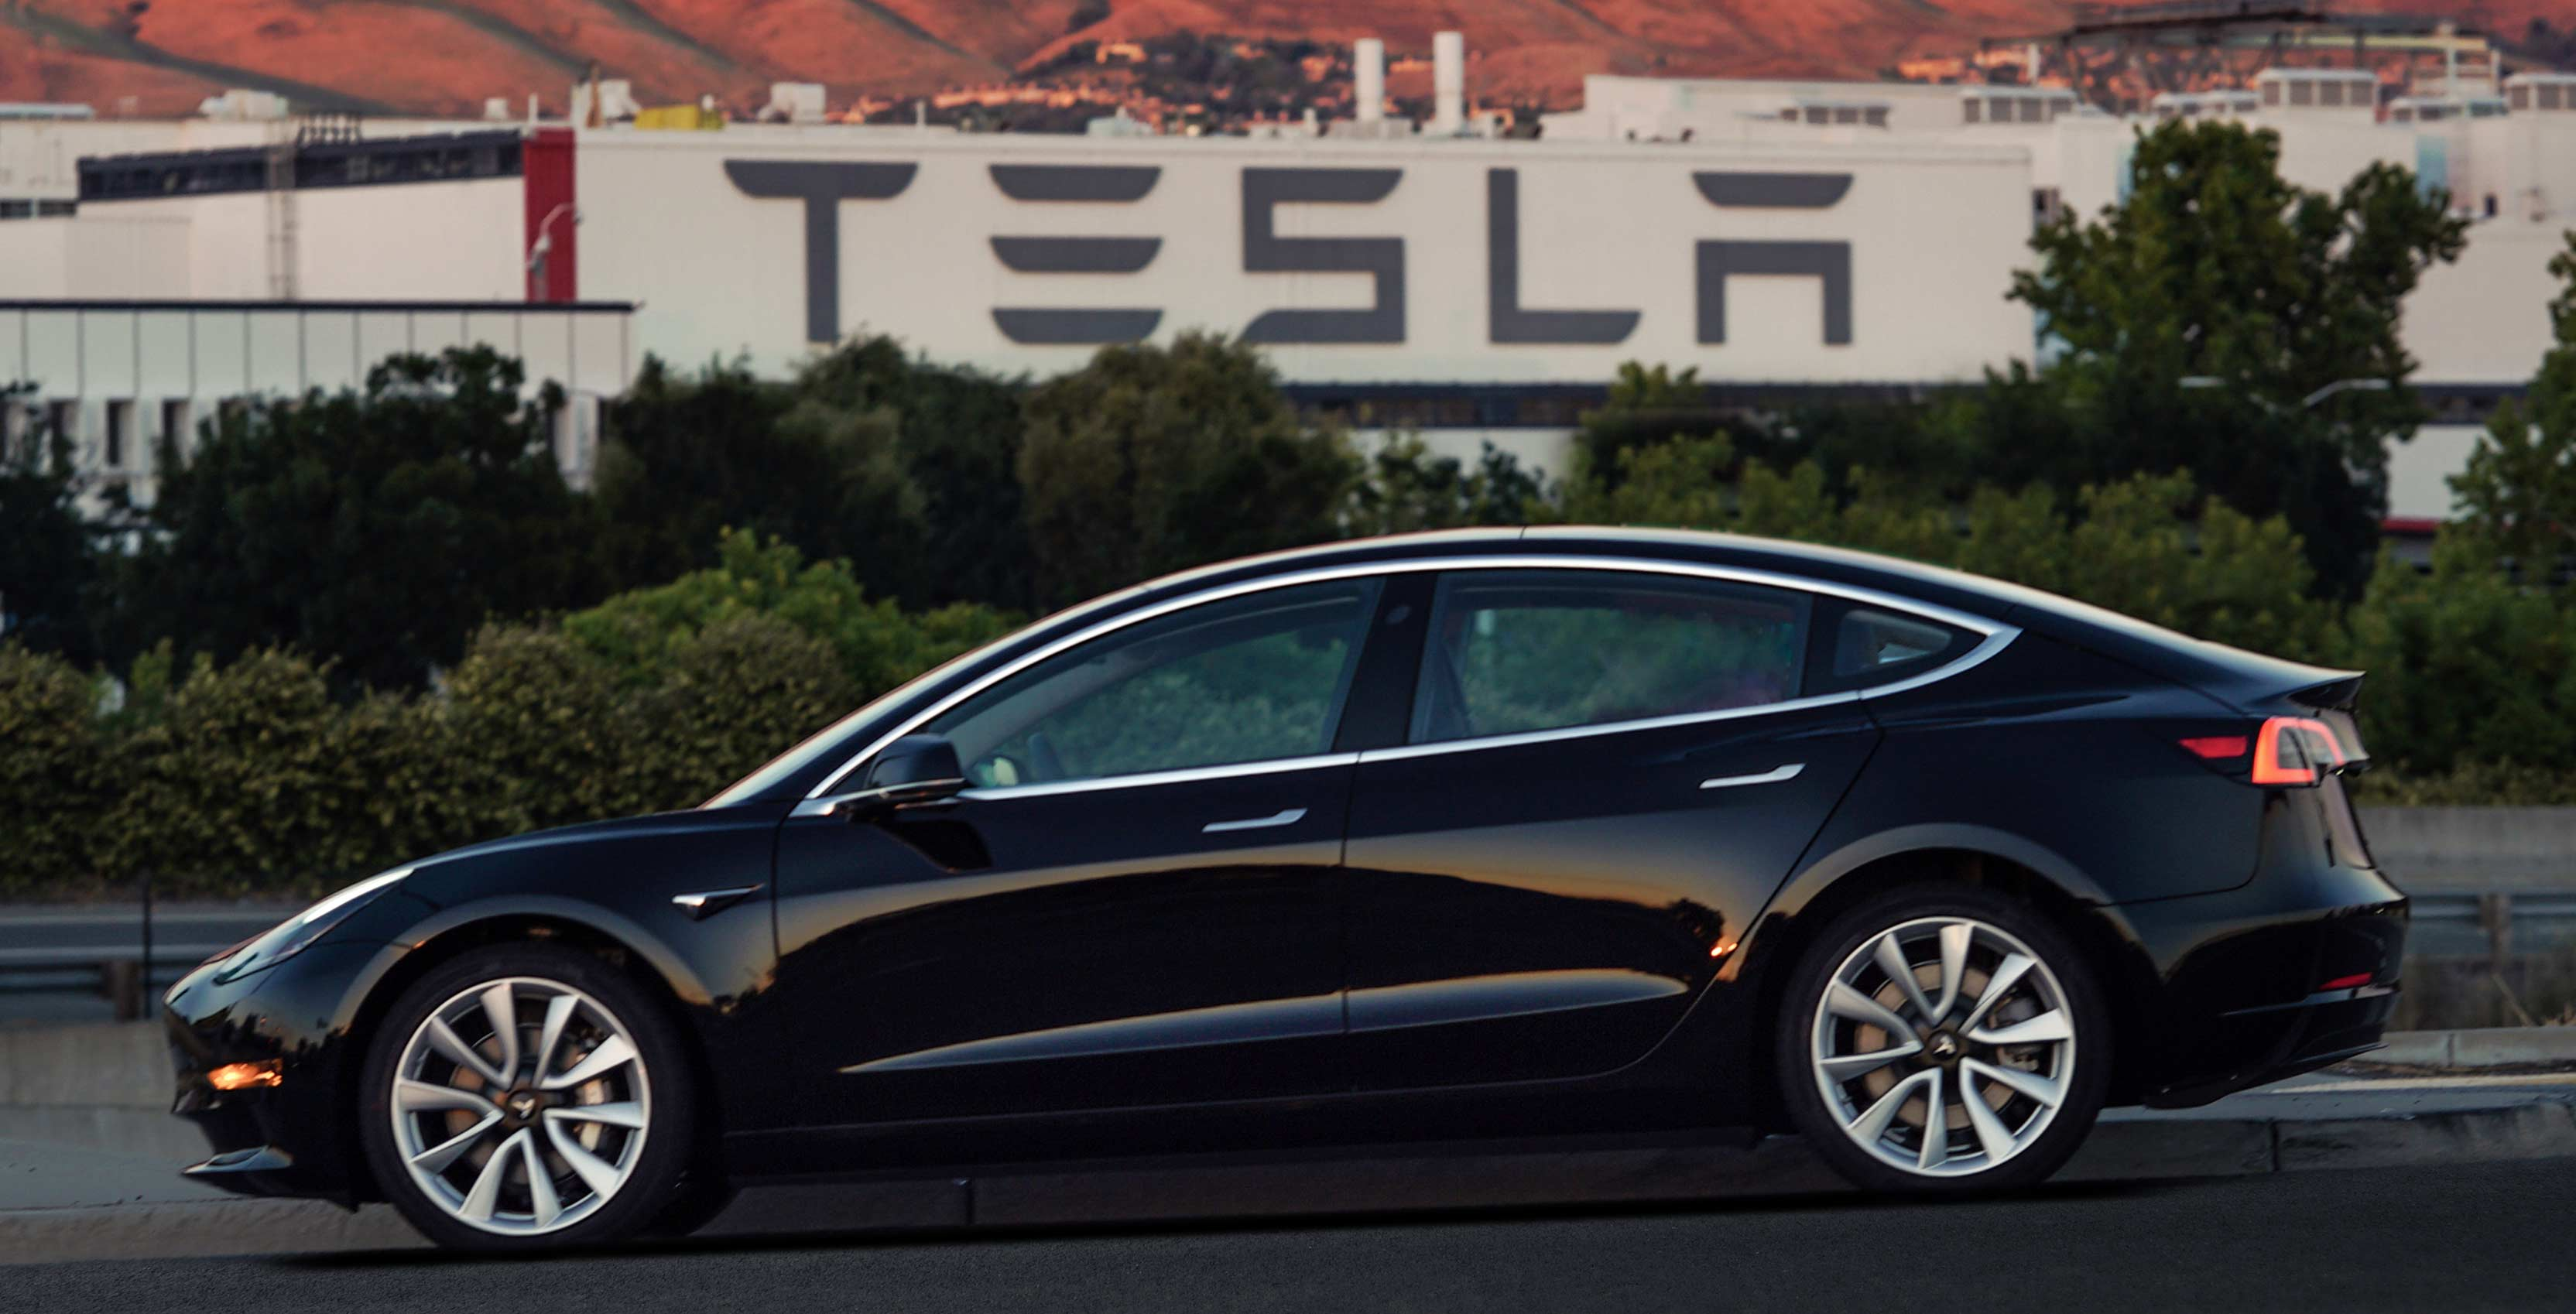 Tesla model 3 first production